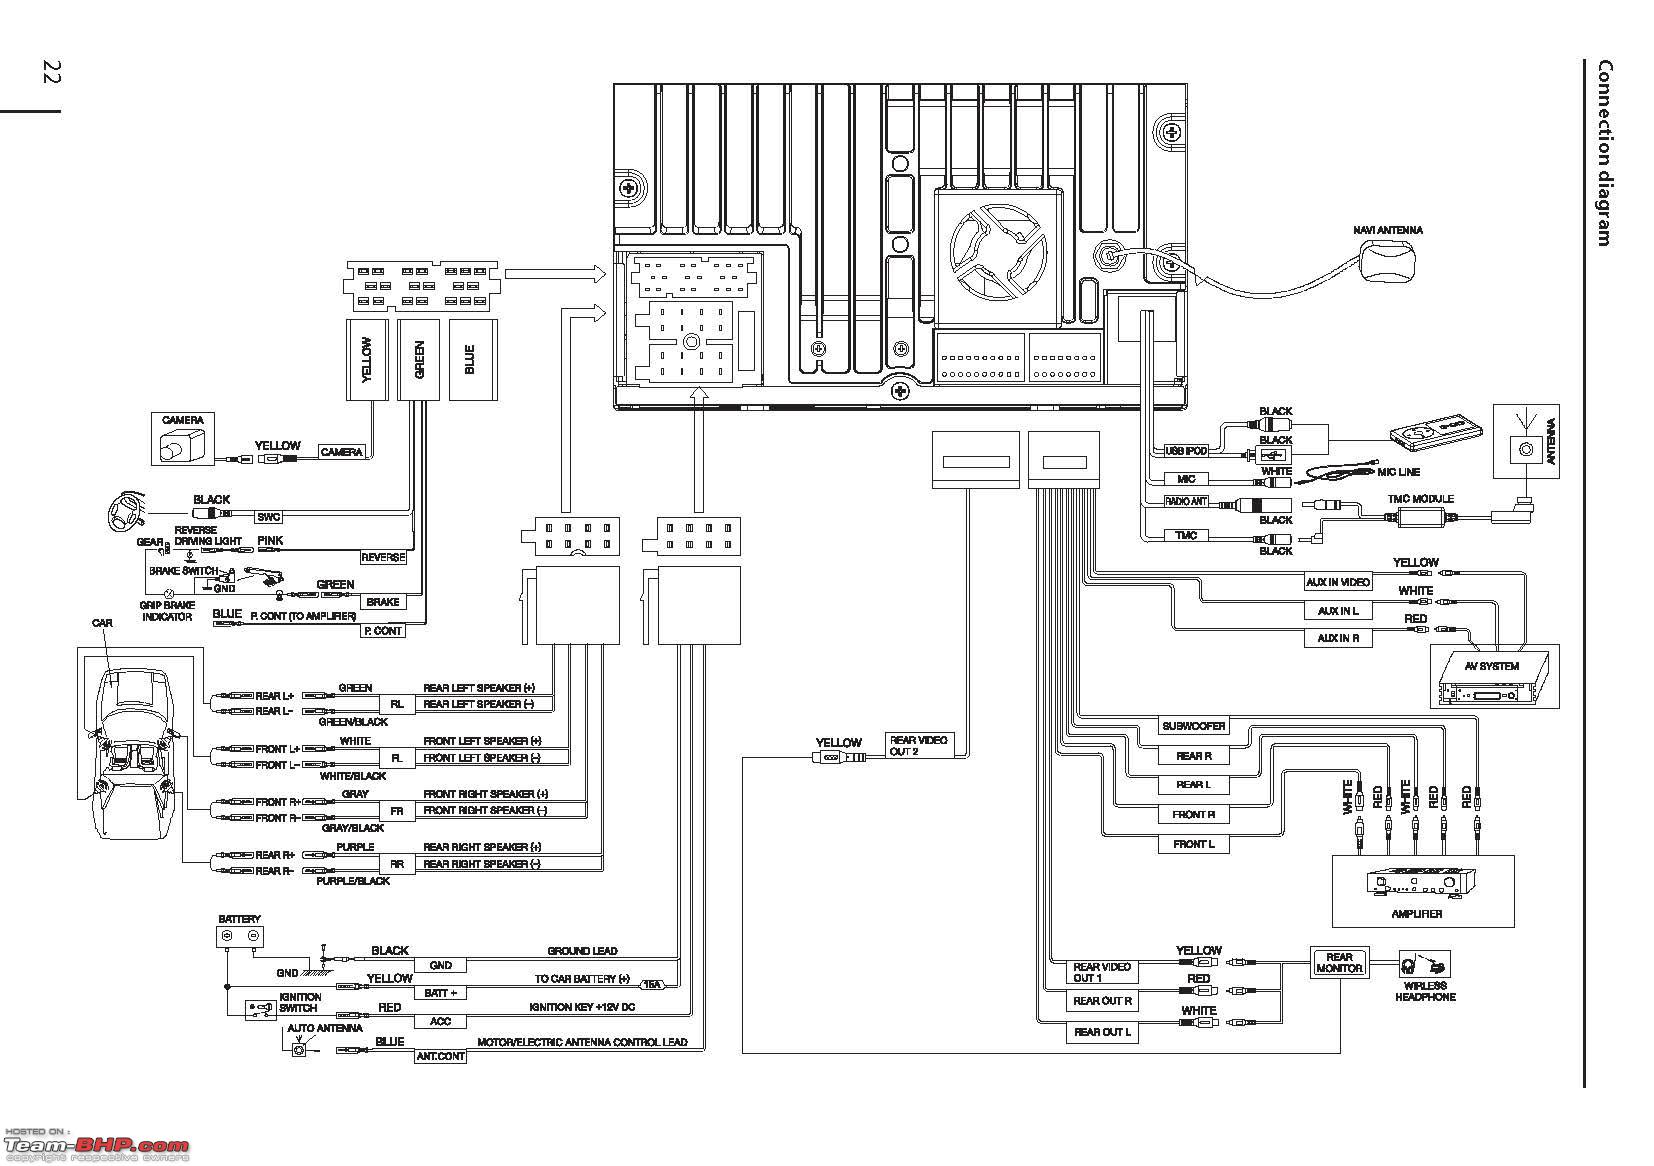 sony car stereo wiring diagram pinterest